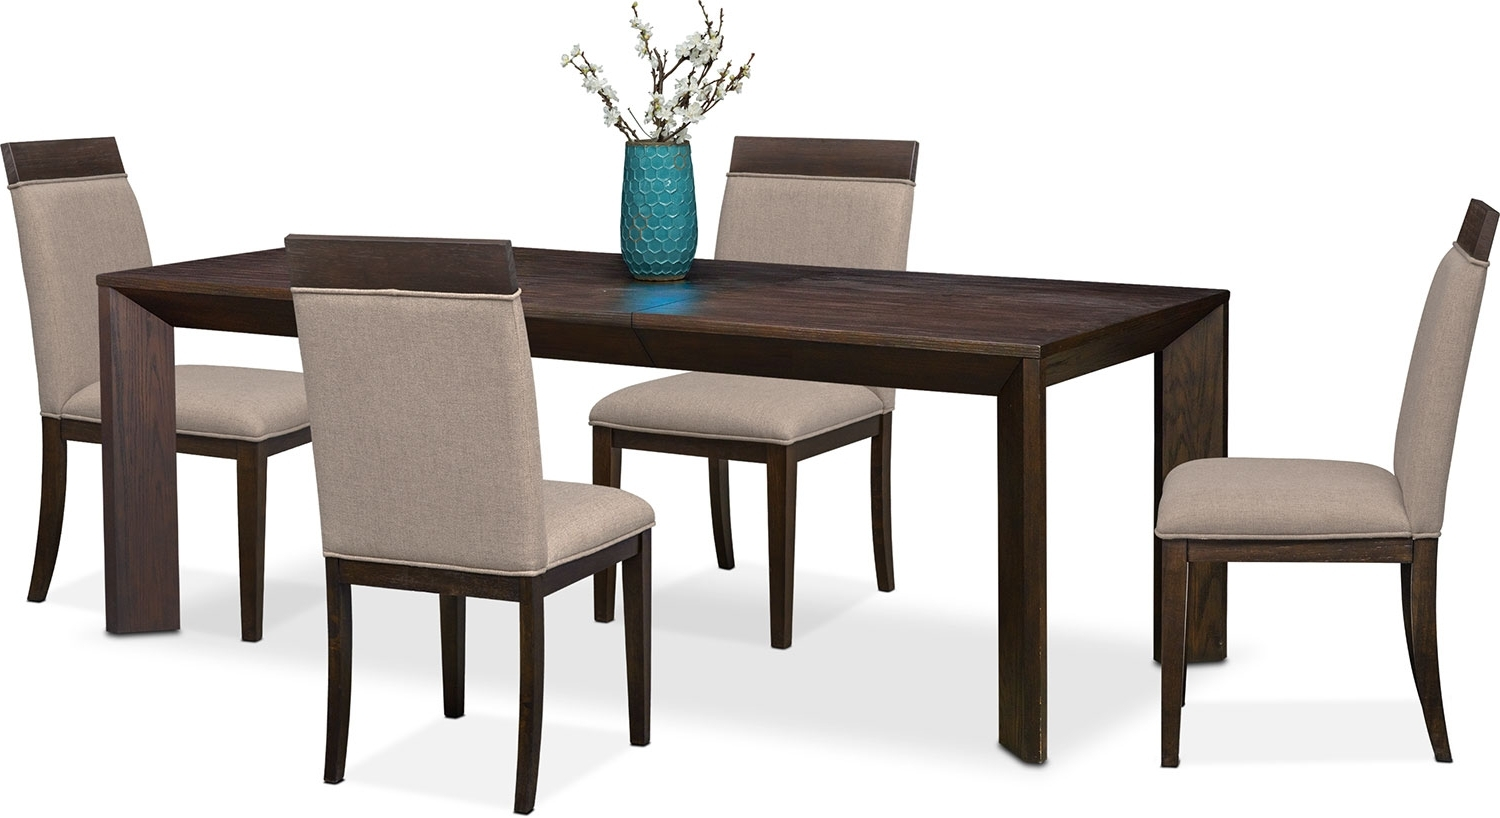 Most Recent Gavin Table And 4 Side Chairs – Brownstone (View 15 of 25)